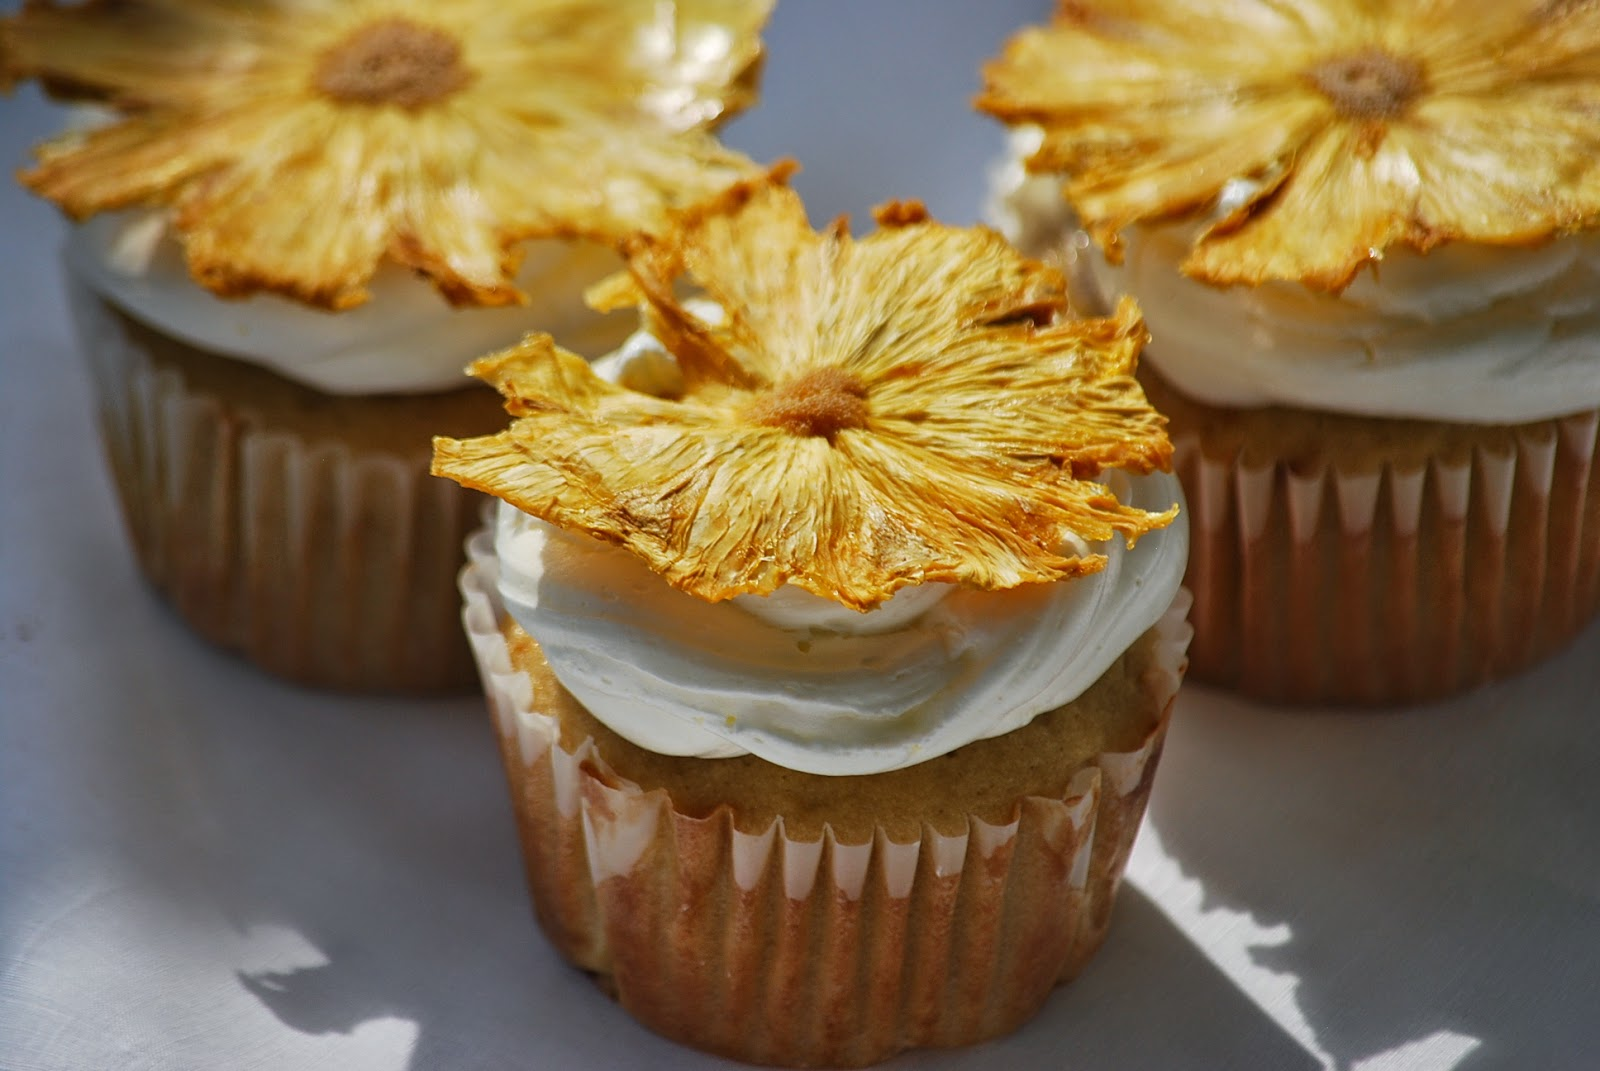 My story in recipes: Pina Colada Cupcakes